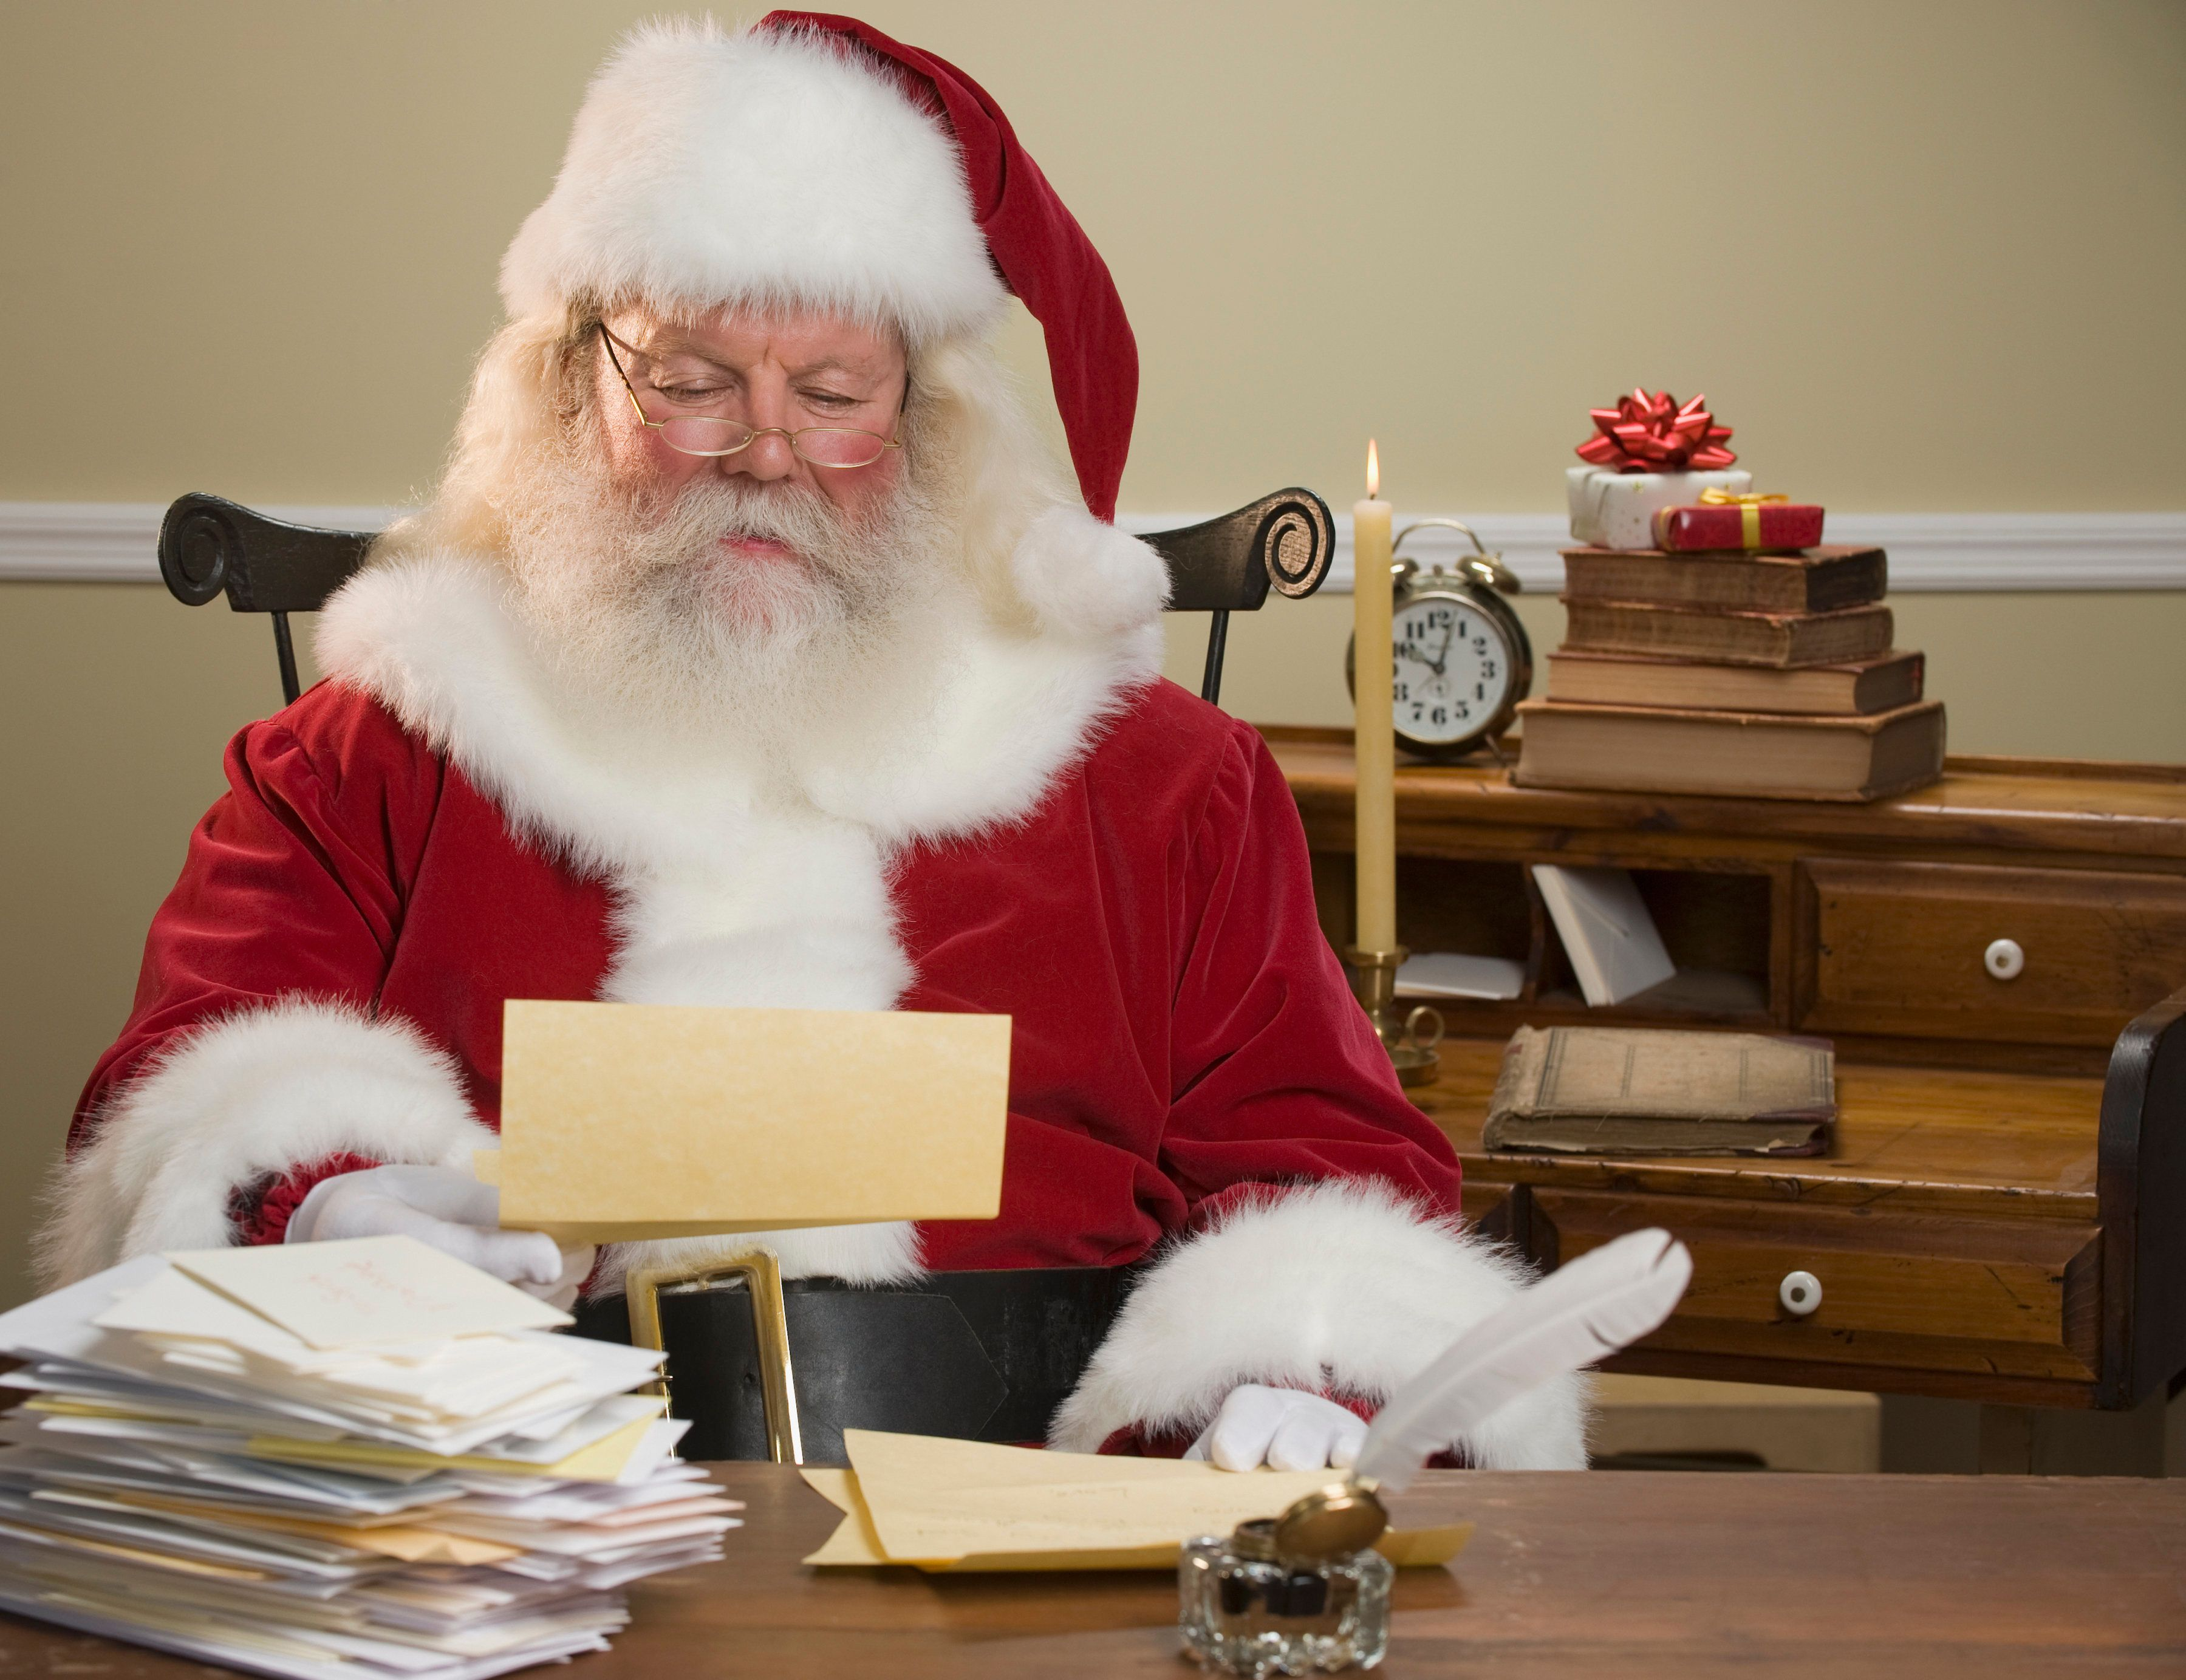 Santalikes reading his letters, but he doesn't always have time to respond. Here's how you can help him out.